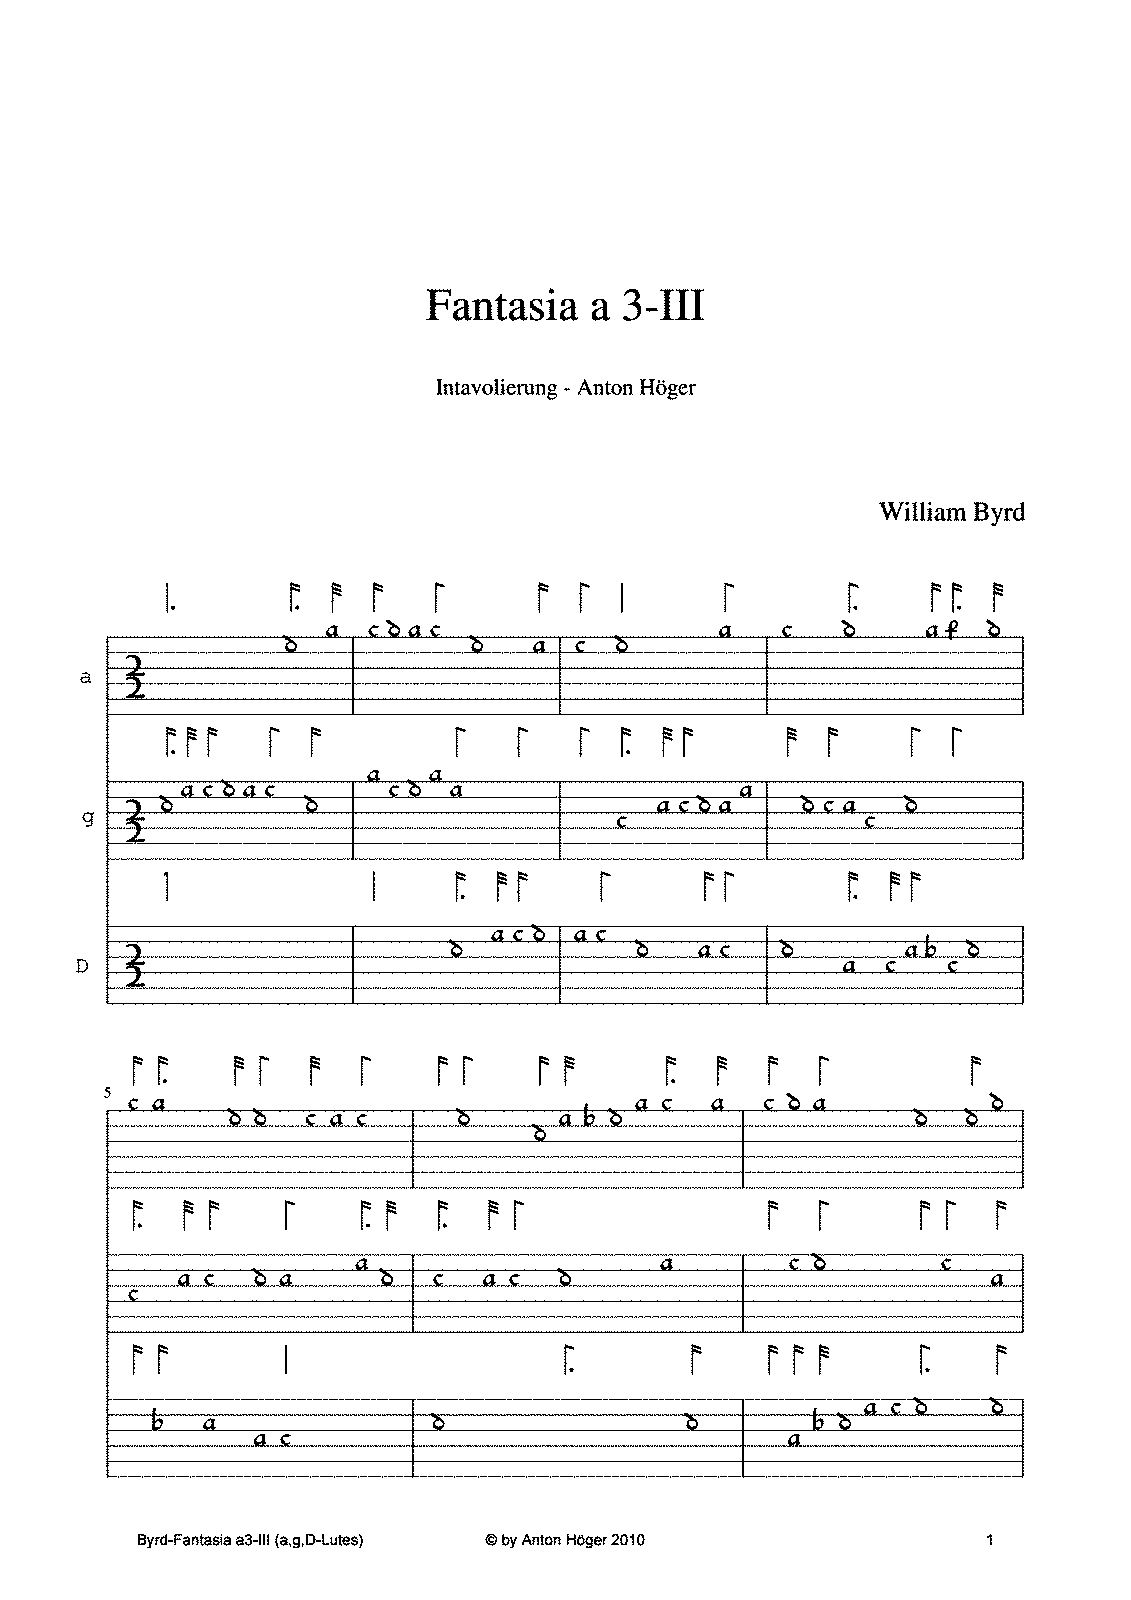 PMLP389658-Byrd, William-Fantasia a3-III (a,g,D-Lutes).pdf